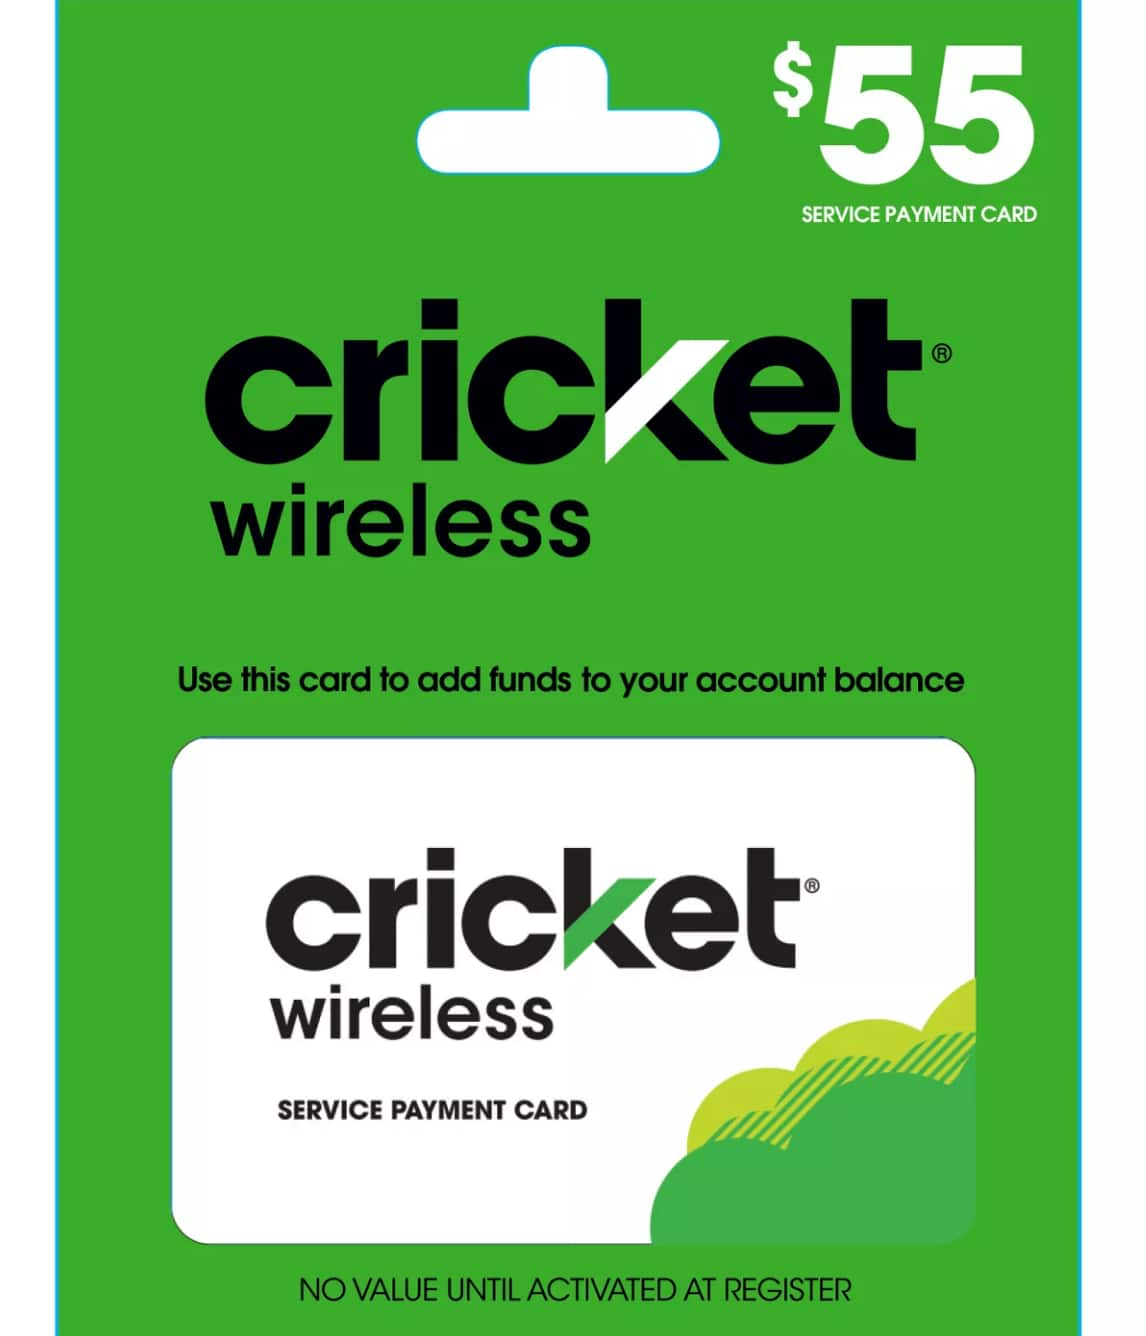 $55 Cricket refill cards for $50 - only works on mobile app